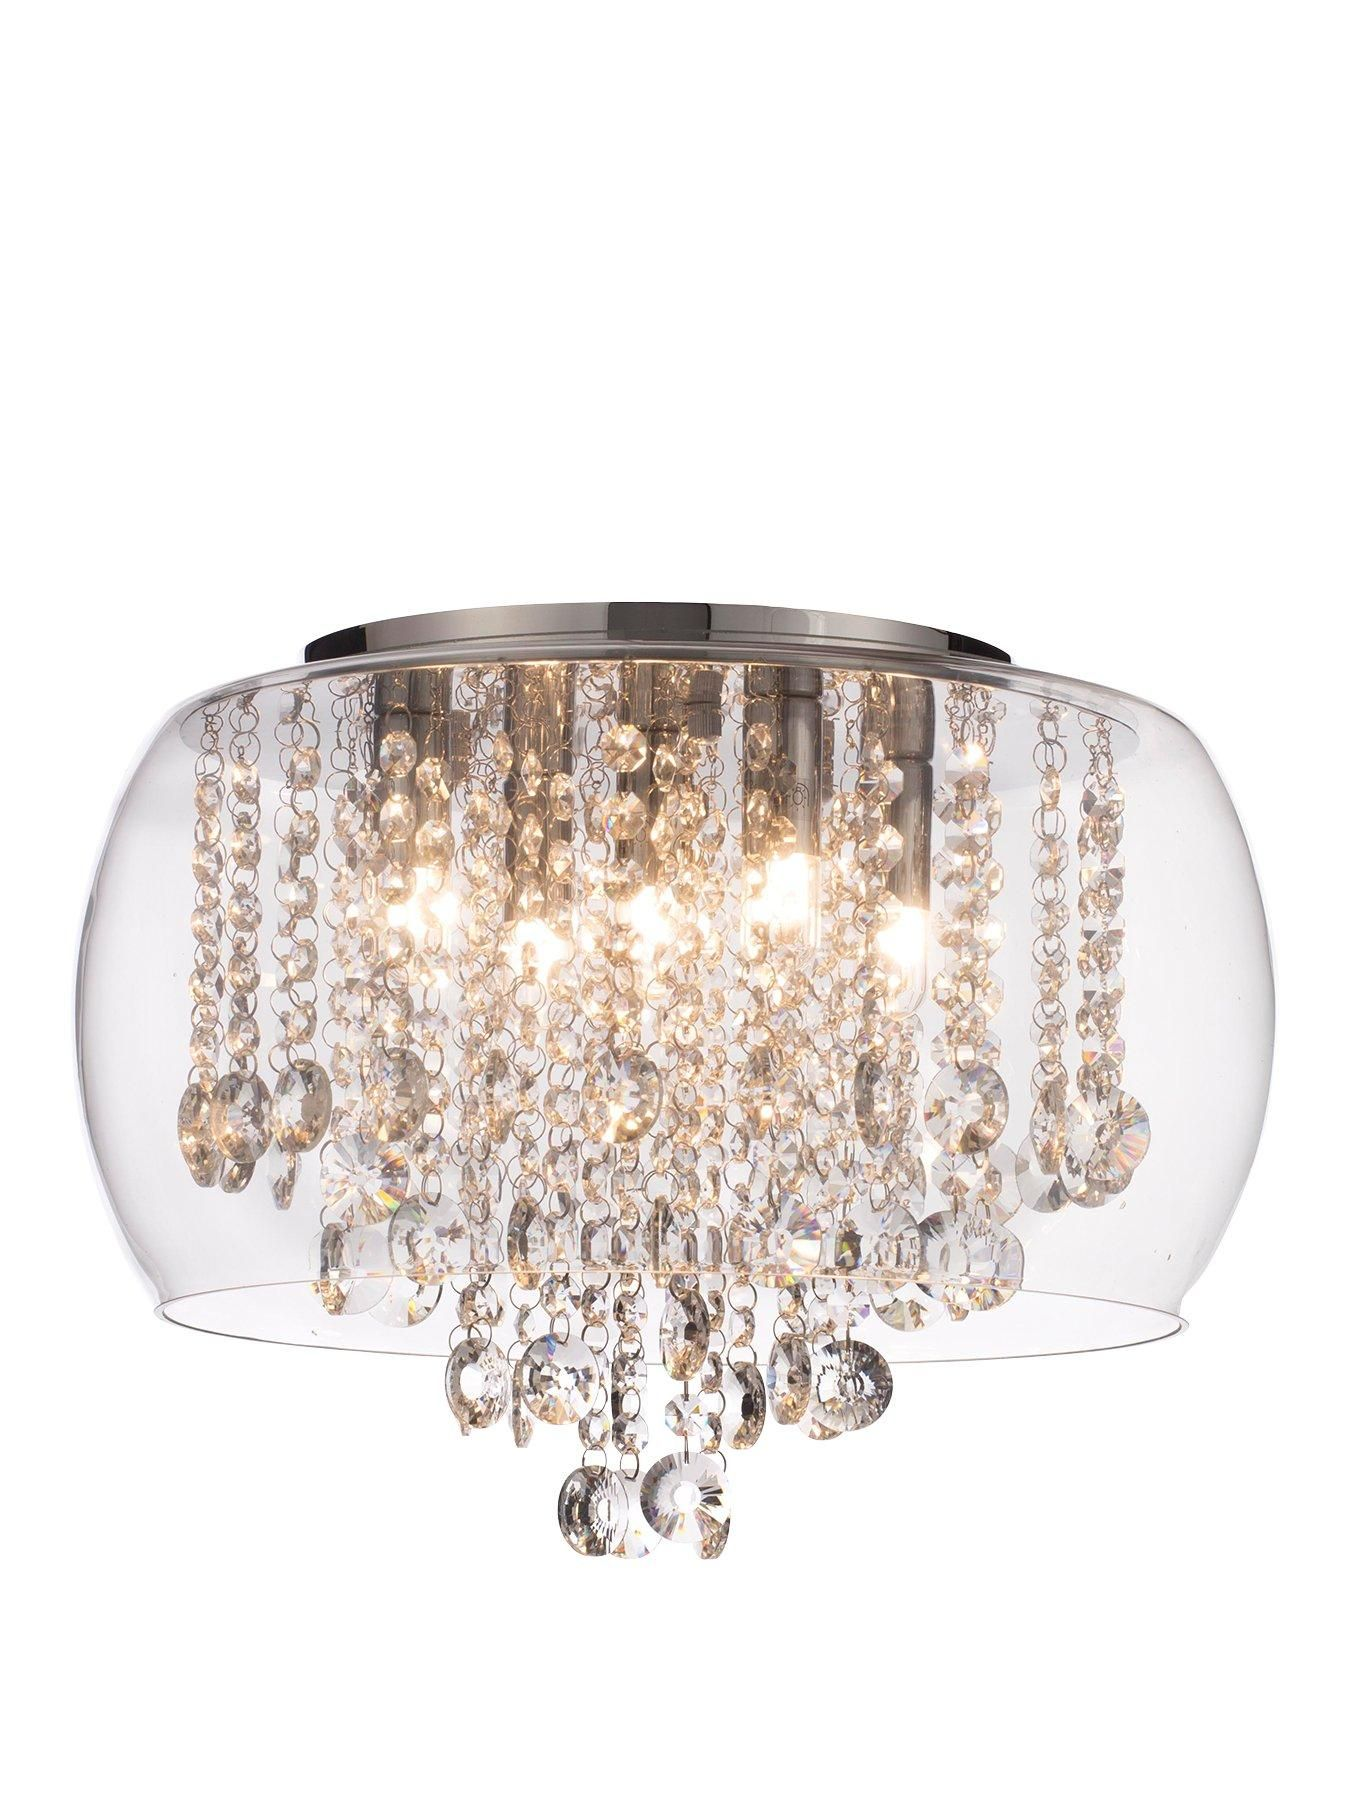 Marquis by waterford nore encased flush crystal light fitting marquis by waterford nore encased flush crystal light fitting small very arubaitofo Gallery